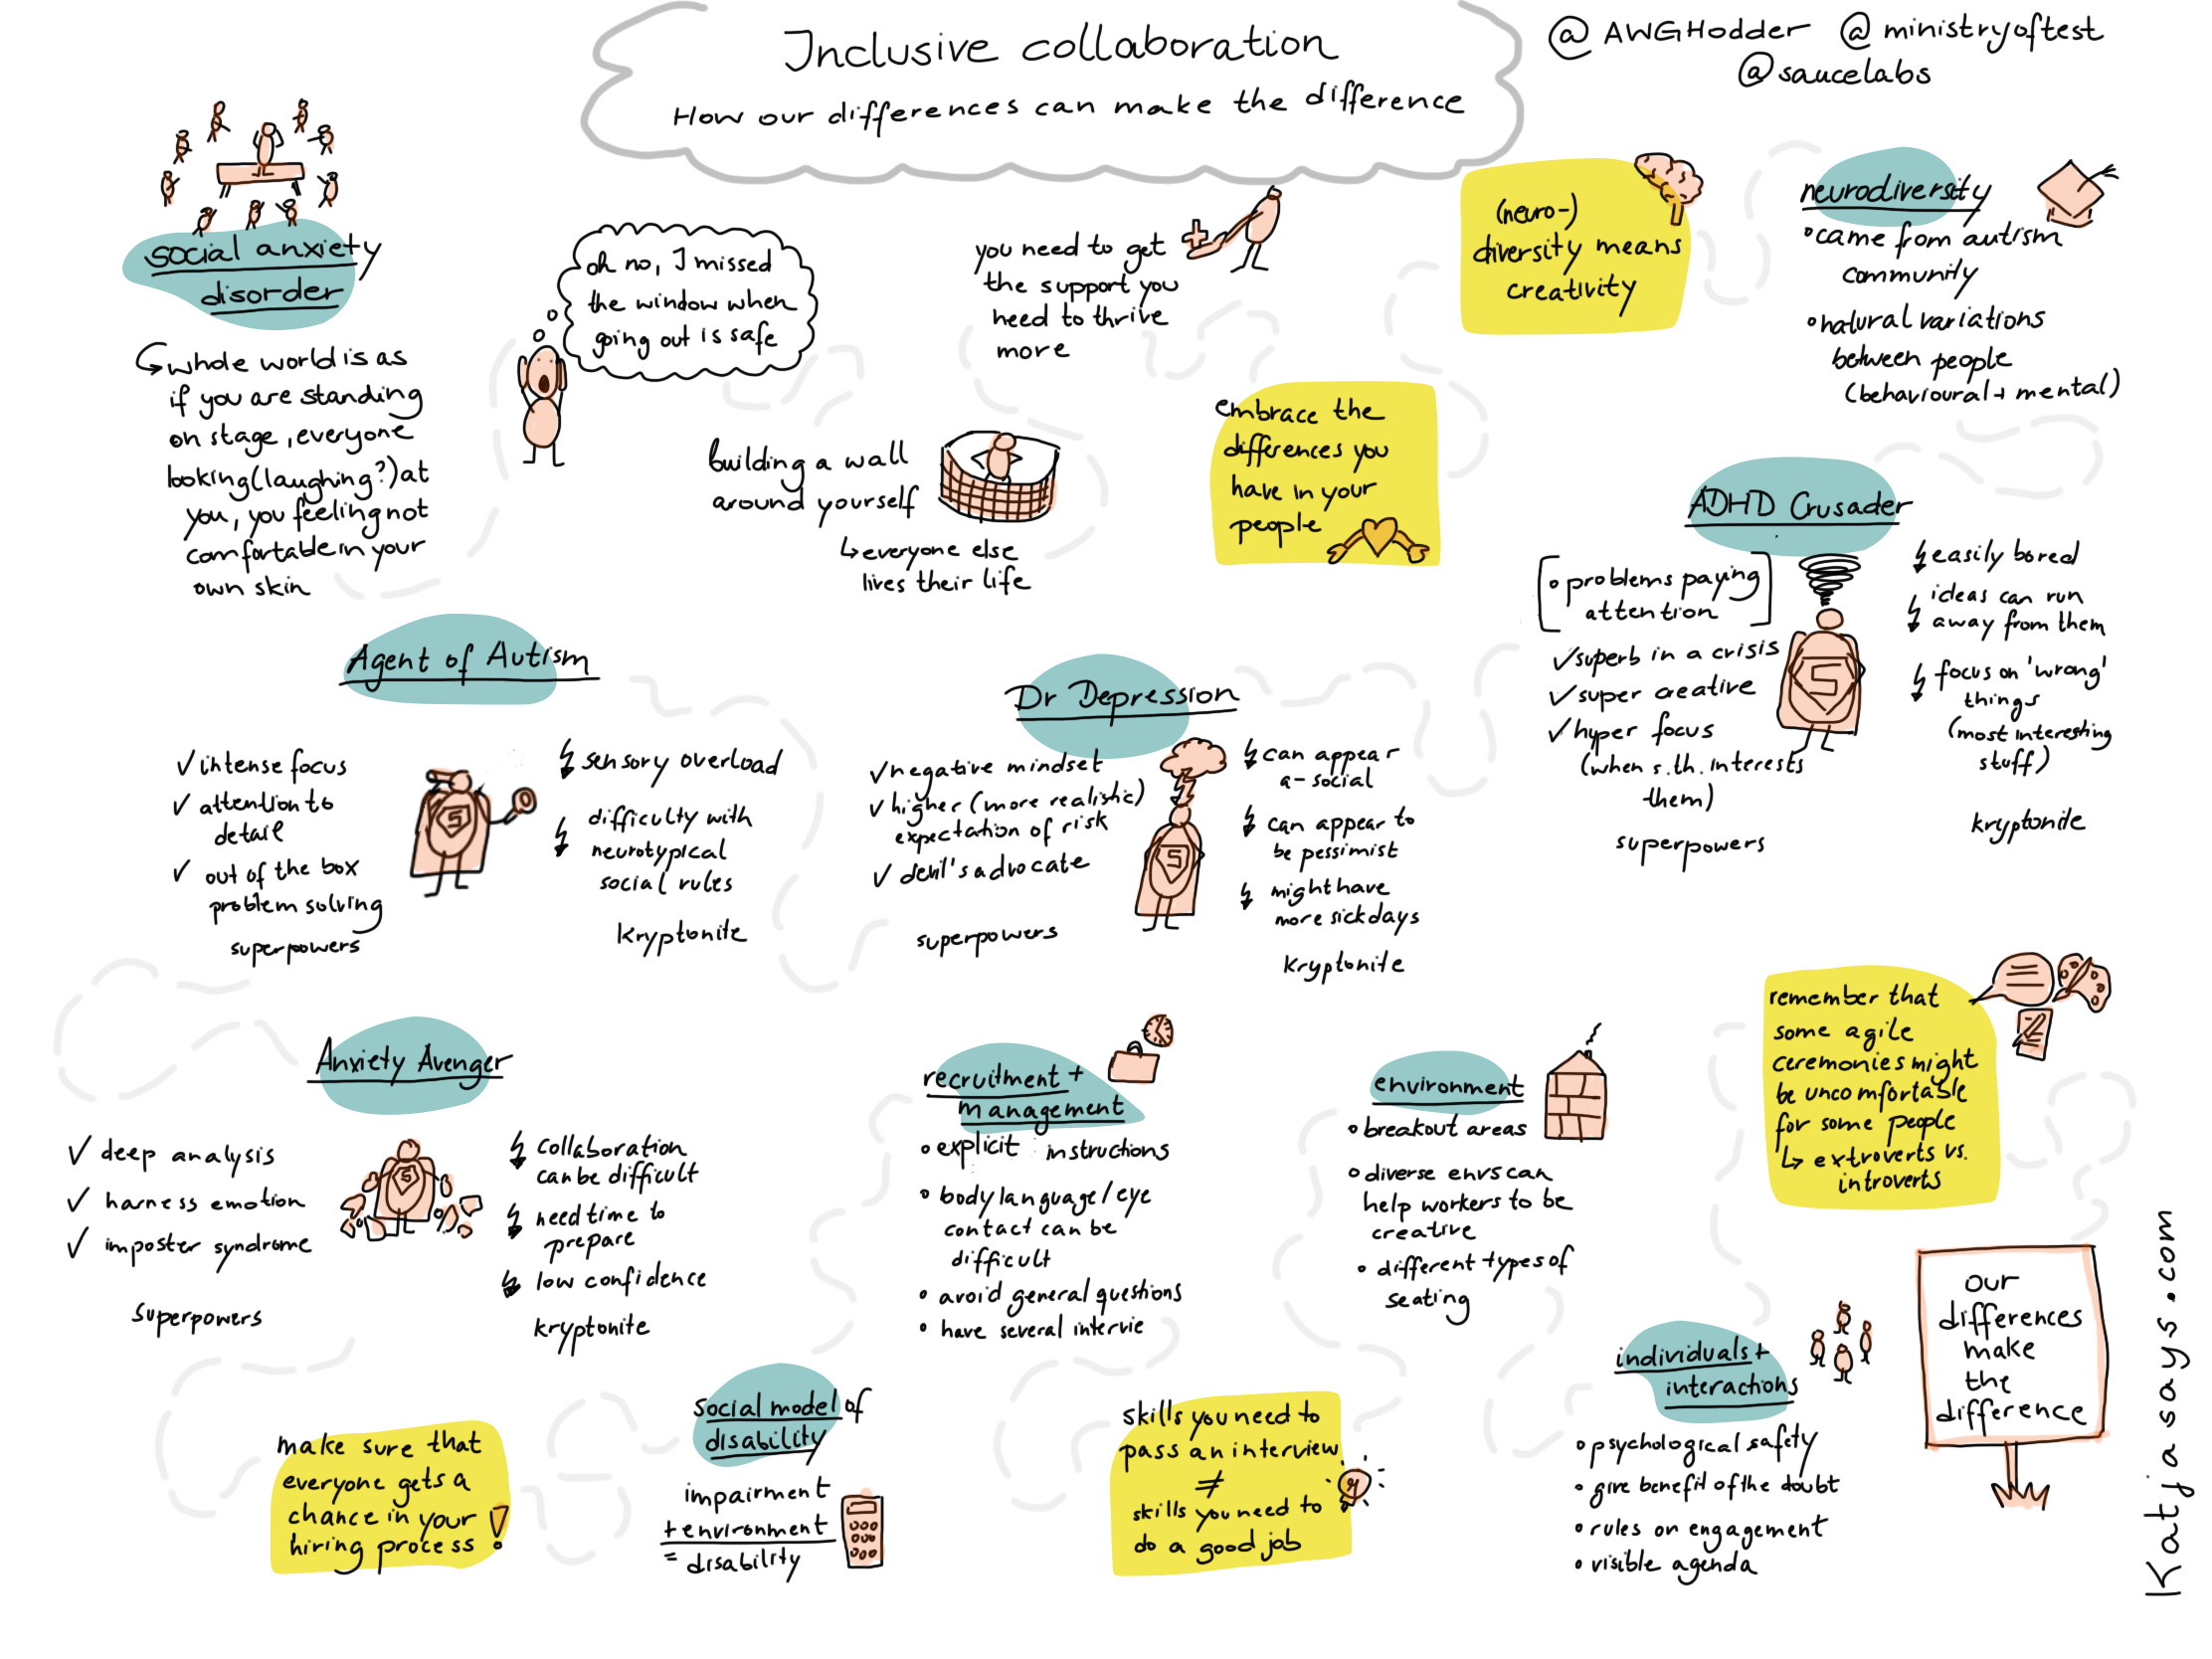 Inclusive collaboration - how our differences can make the difference sketchnote